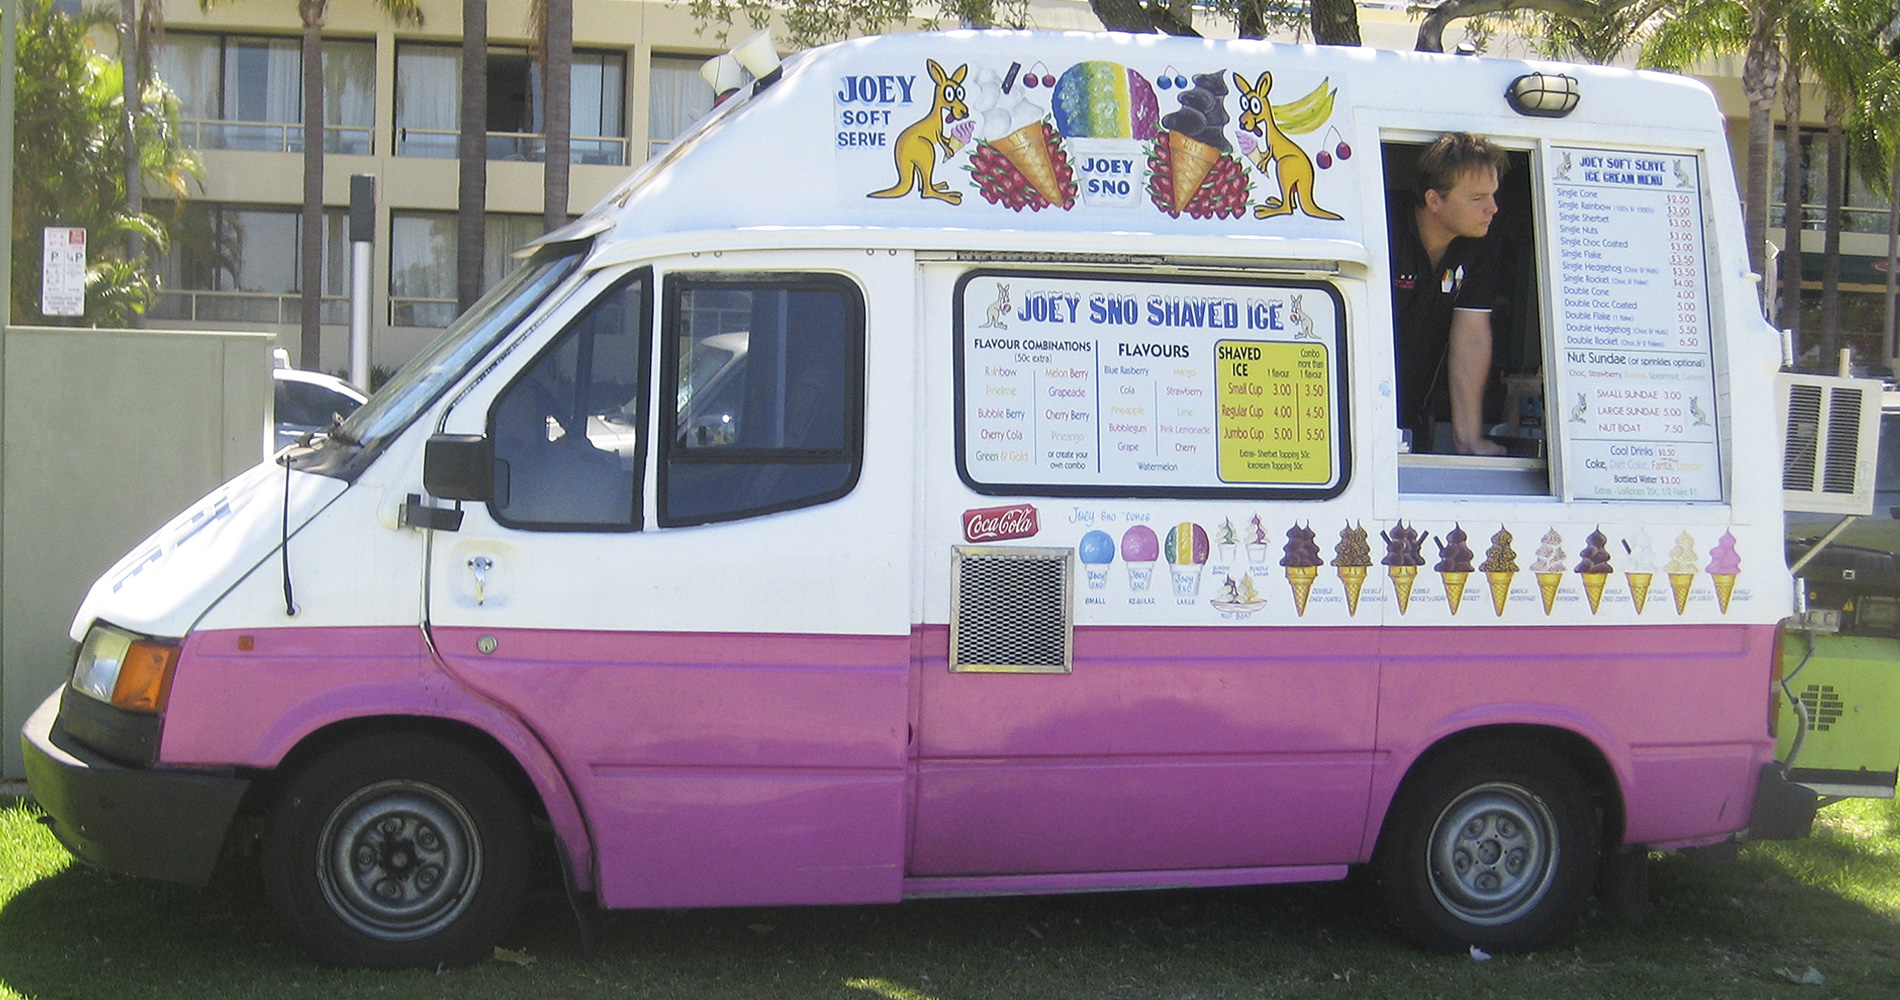 b987a0a9756f Ice Cream Vans - Joey Soft Serve Ice Cream Vans